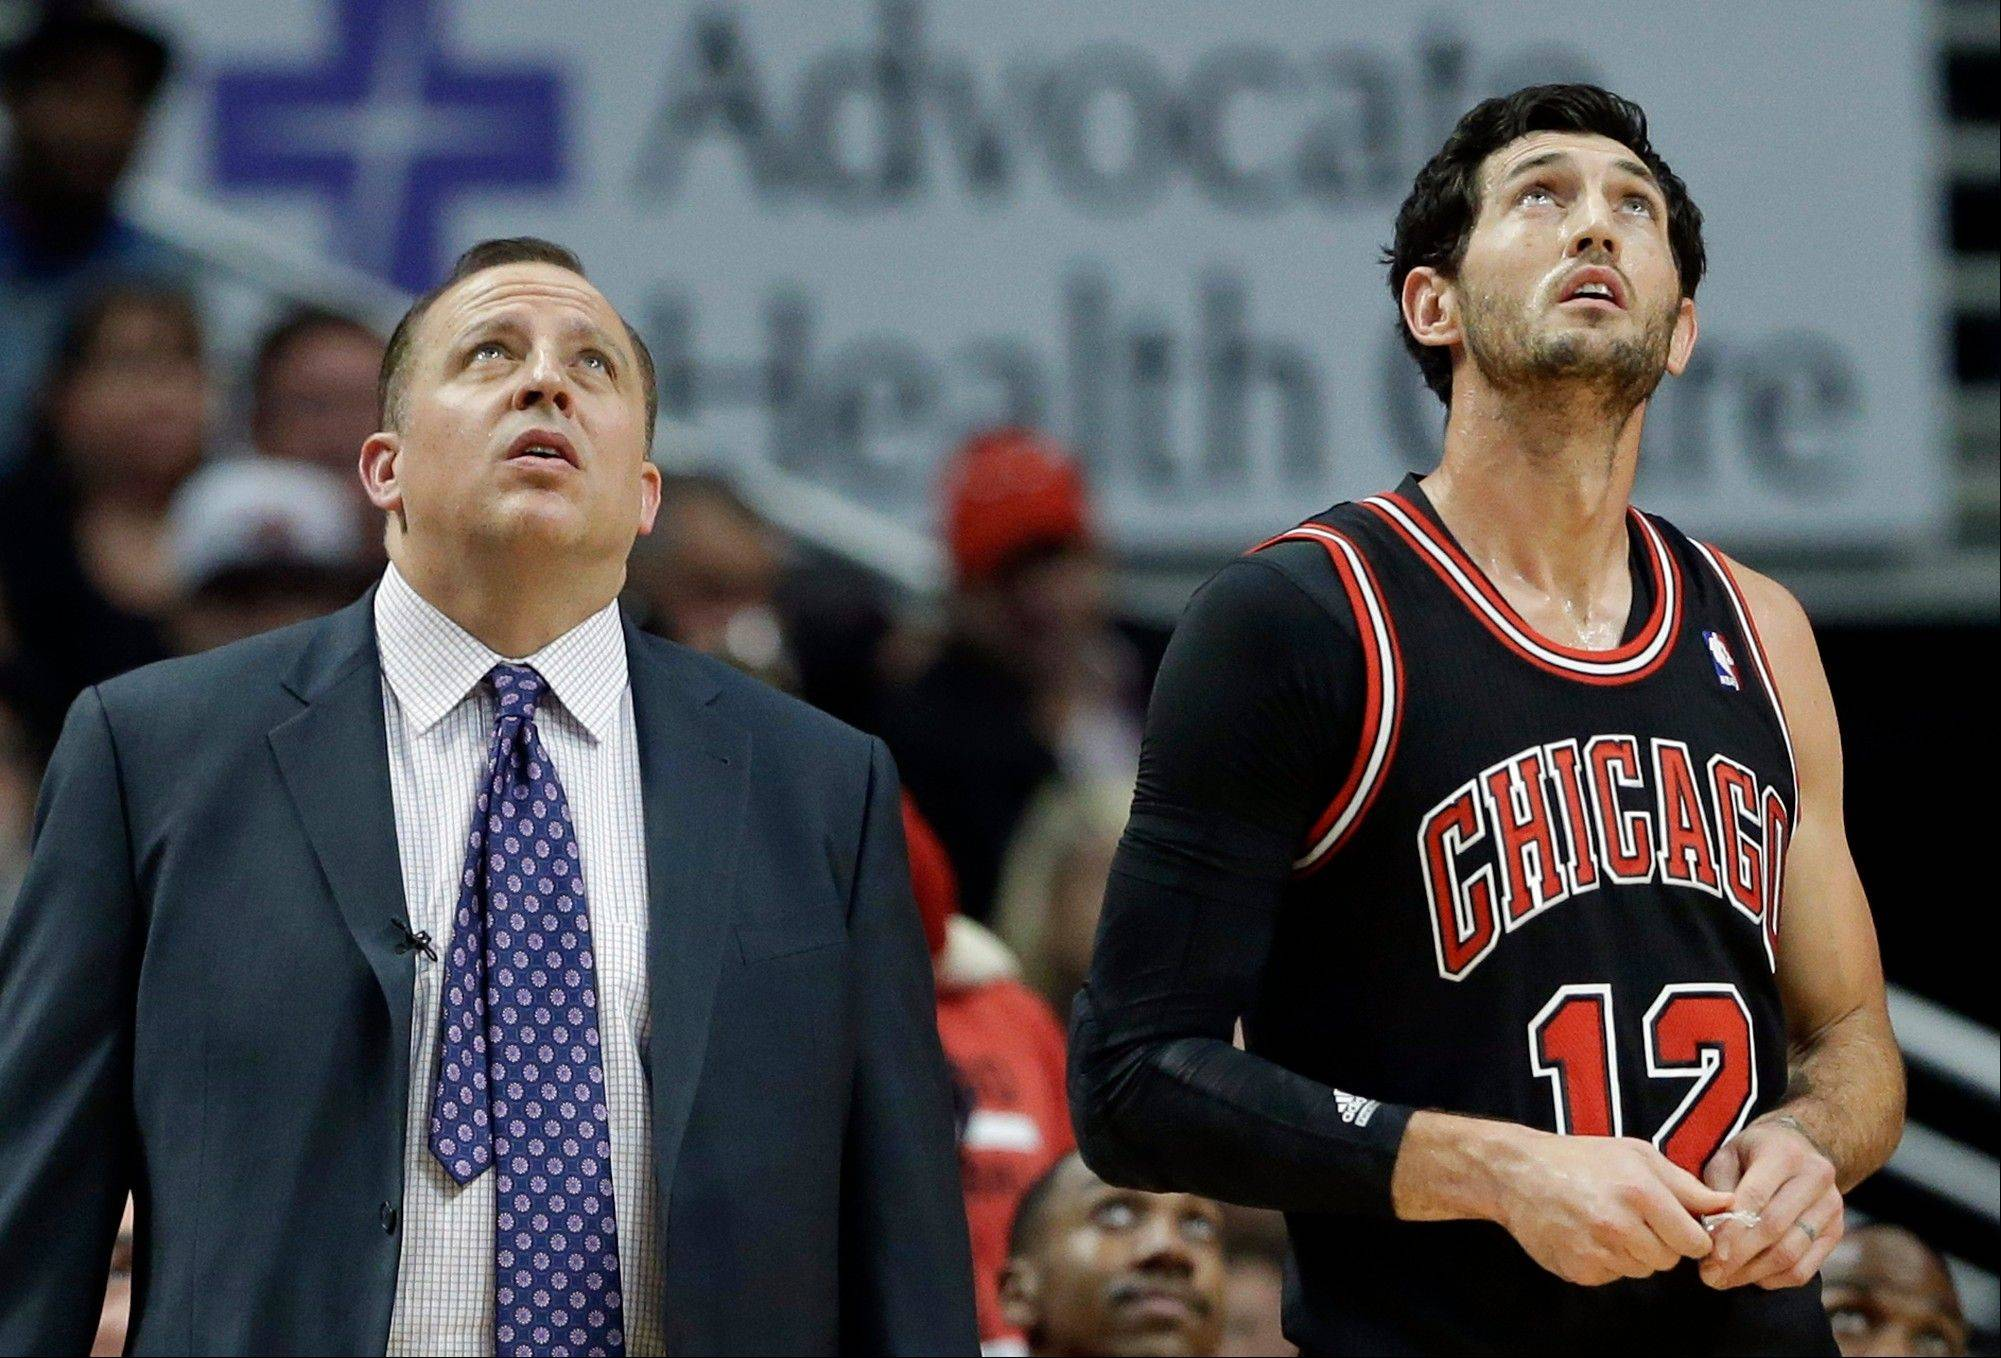 Things have not been looking up for the Bulls early this season, and coach Tom Thibodeau feels a sense of urgency to turn things around.